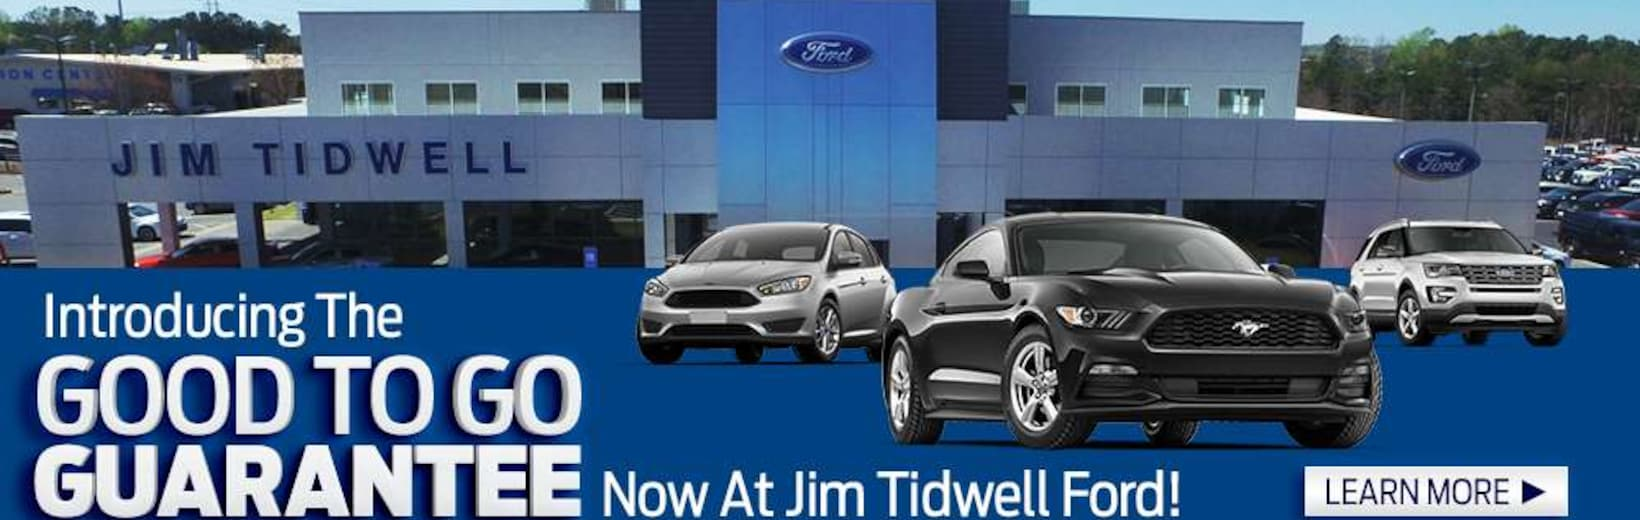 New used ford dealership jim tidwell ford in kennesaw ga previous next solutioingenieria Choice Image